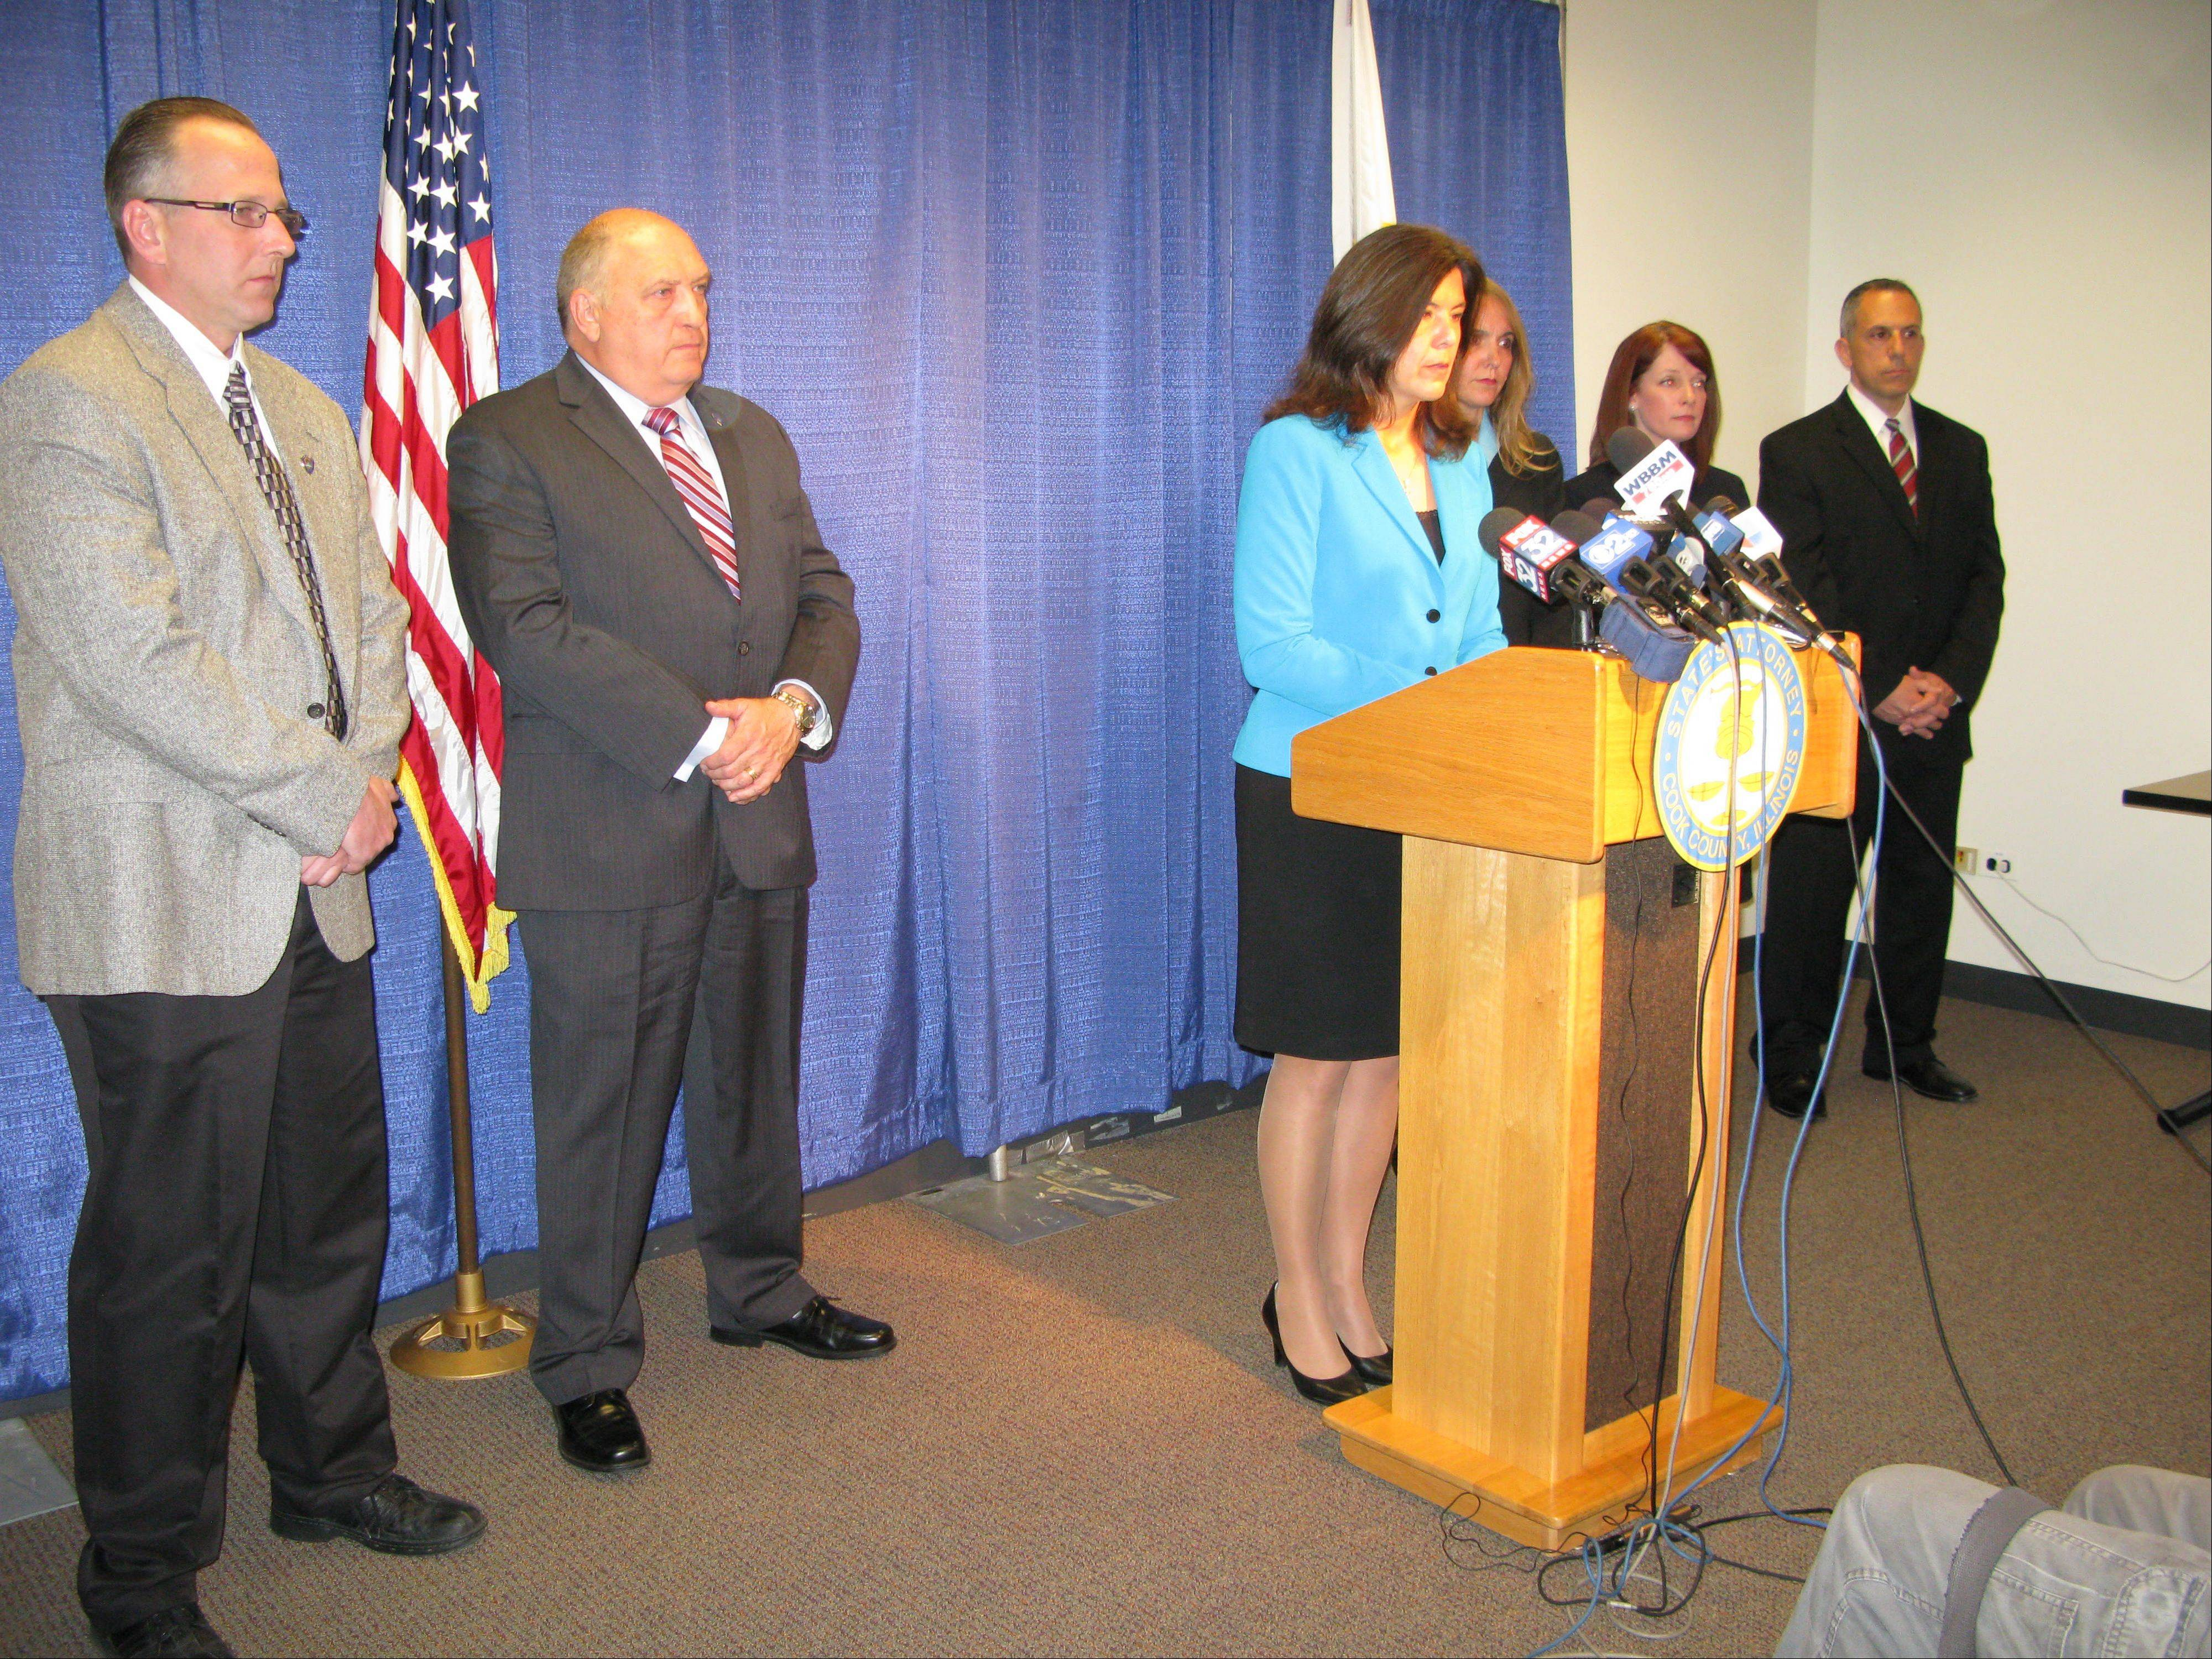 Cook County State's Attorney Anita Alvarez, at podium, announces multiple misdemeanor charges Wednesday against former Maine West High School soccer coach Michael Divincenzo related to hazing, battery and failure to report abuse, after her office's five-month-long investigation into allegations of hazing at the Des Plaines school.